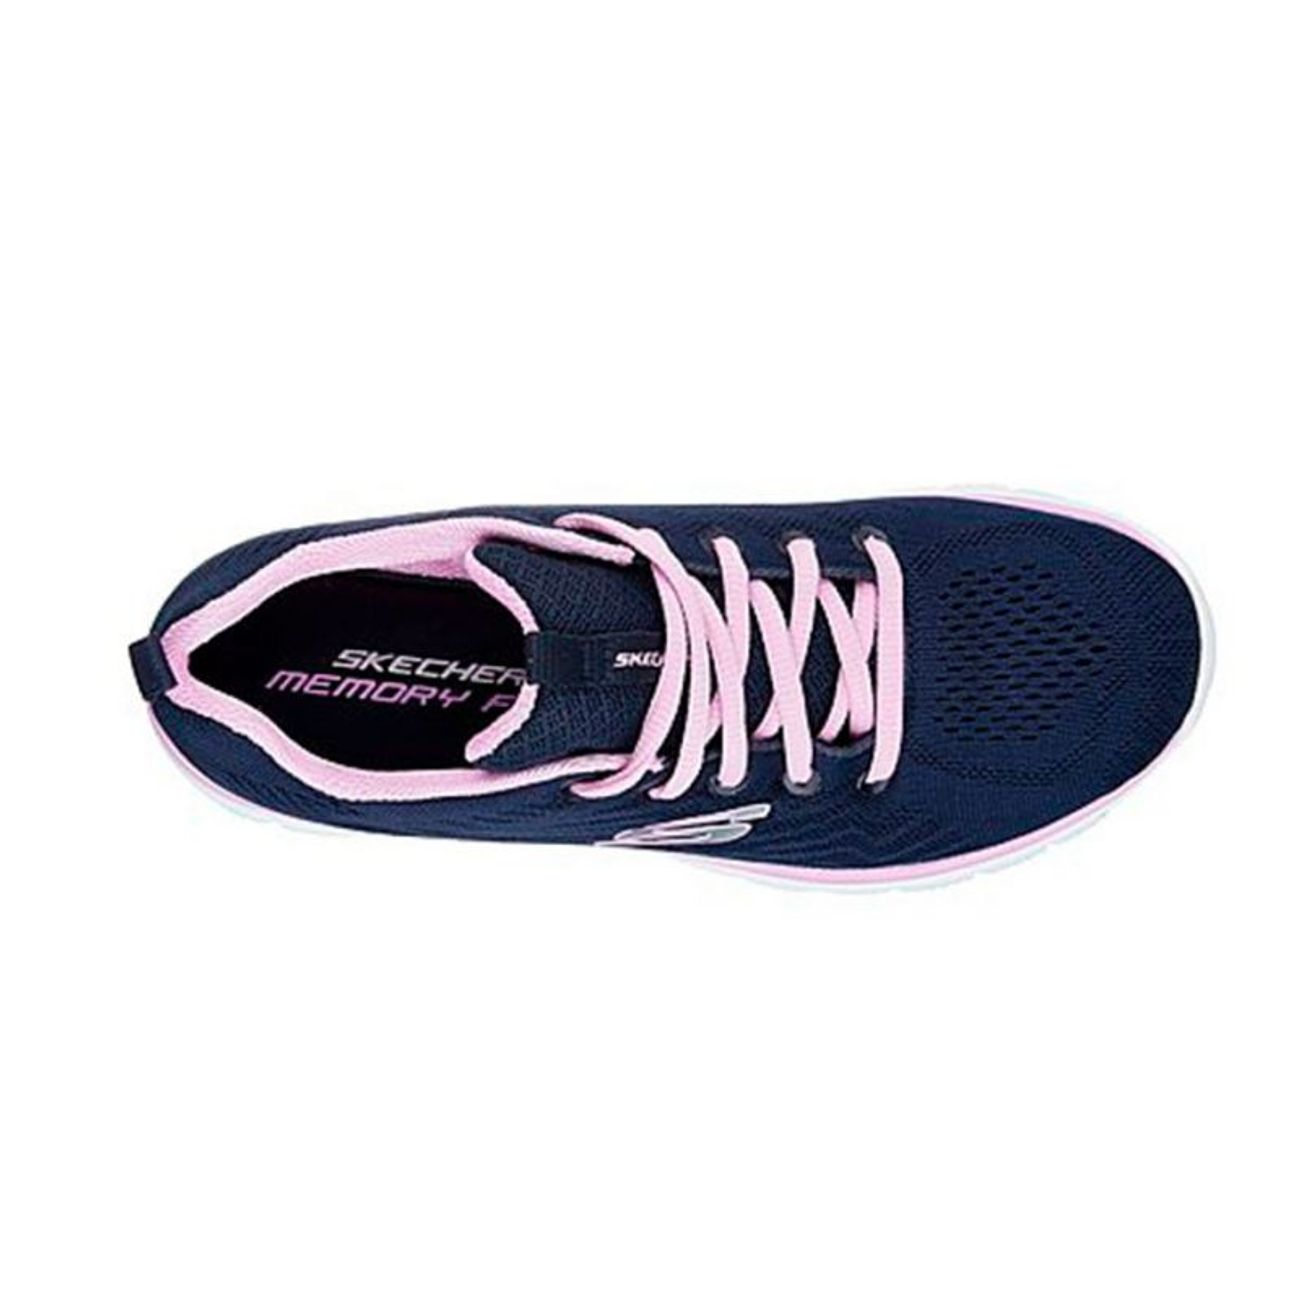 Padel Skechers Mujer Get Adulte Nvpk Connected Sk12615 Graceful Azul Marino dBEQCWxoer